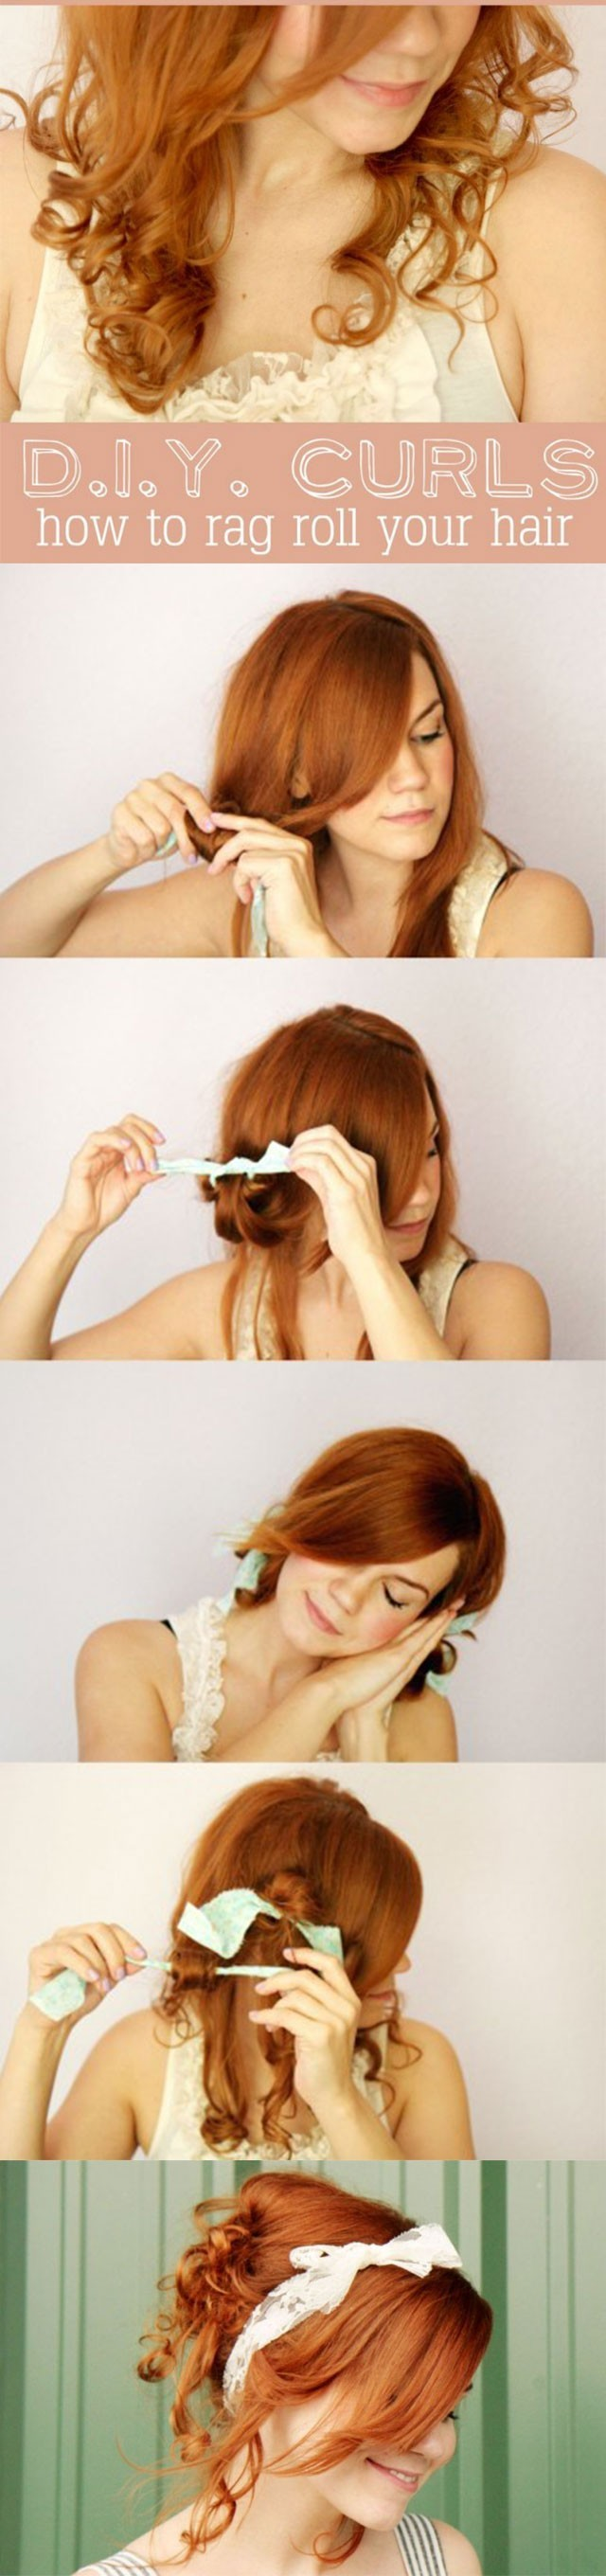 DIY curls: how to rag your hair